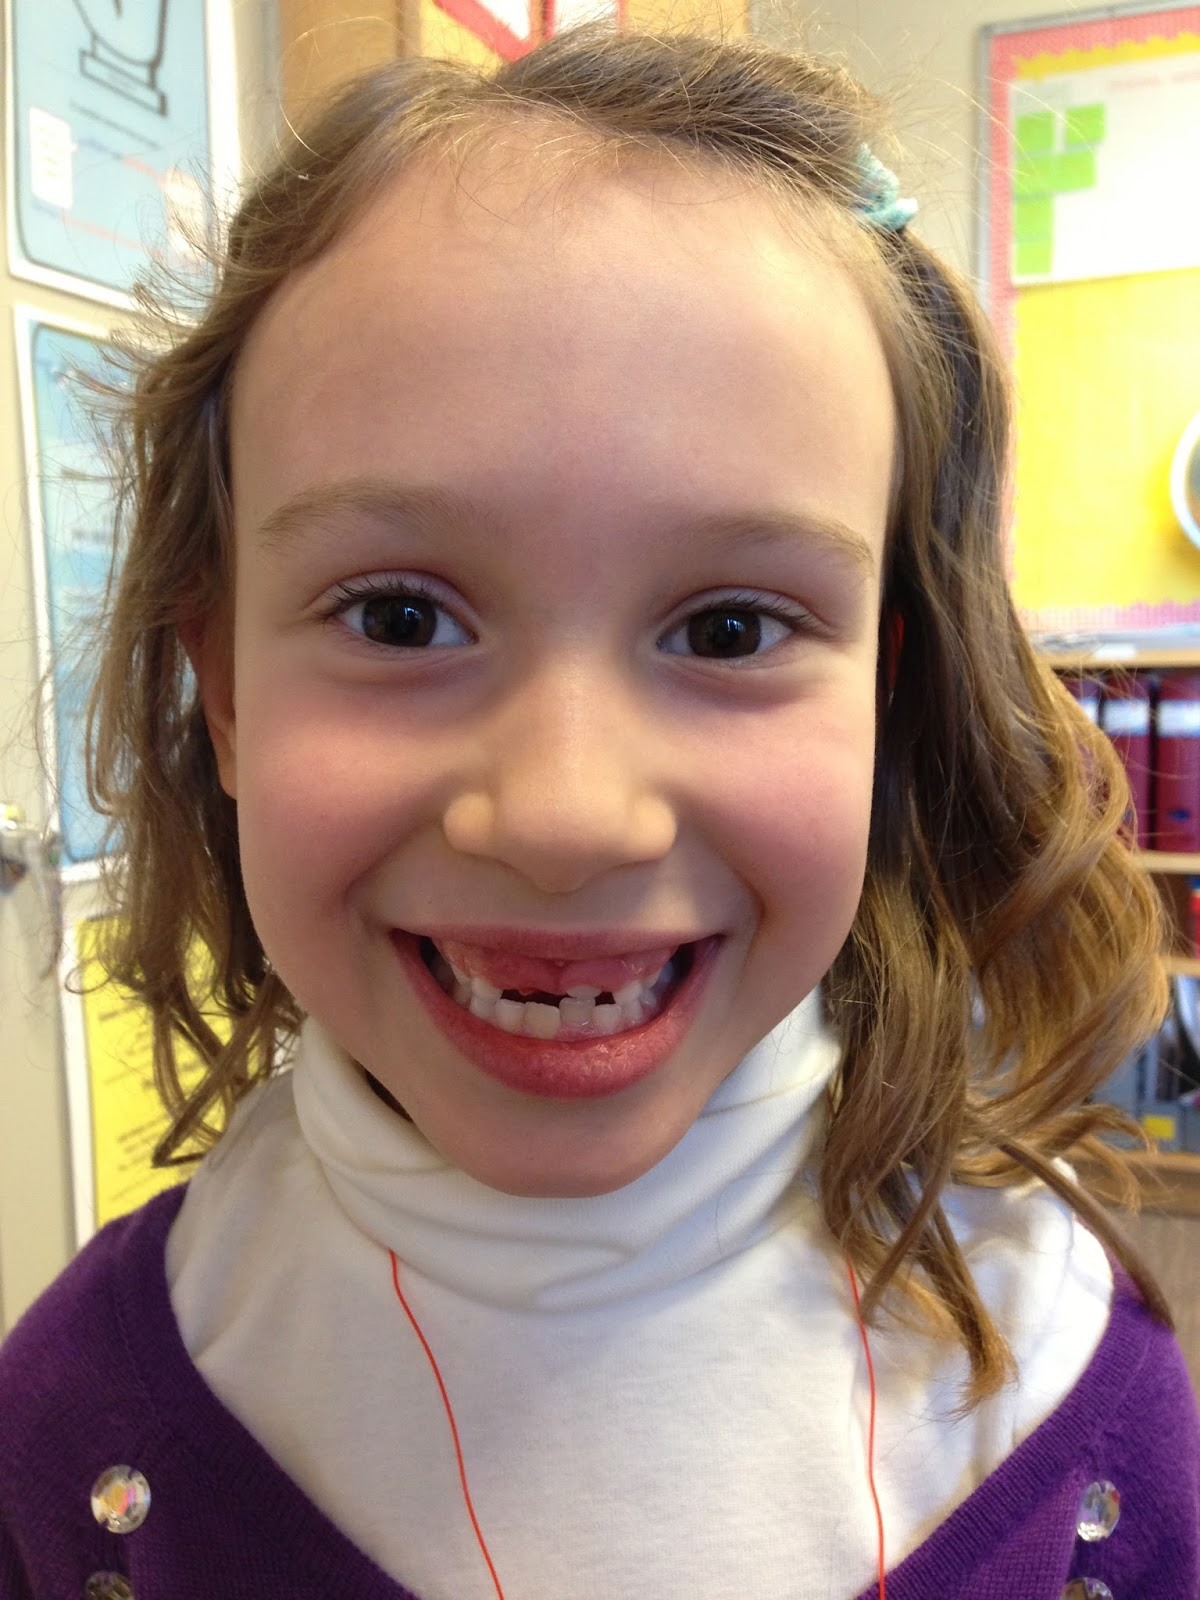 child missing front teeth - tooth fairy traditions